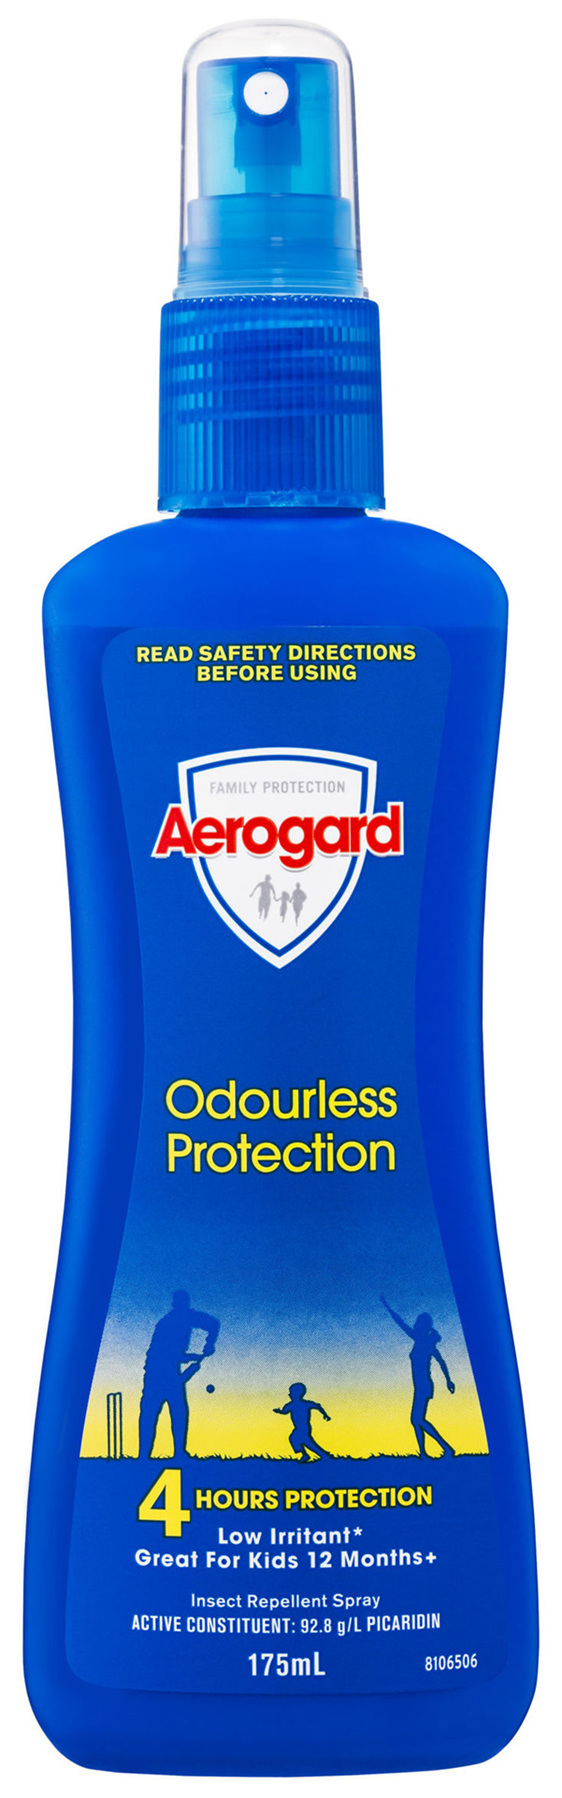 Aerogard Odourless Protection Insect Repellent Pump 175ml